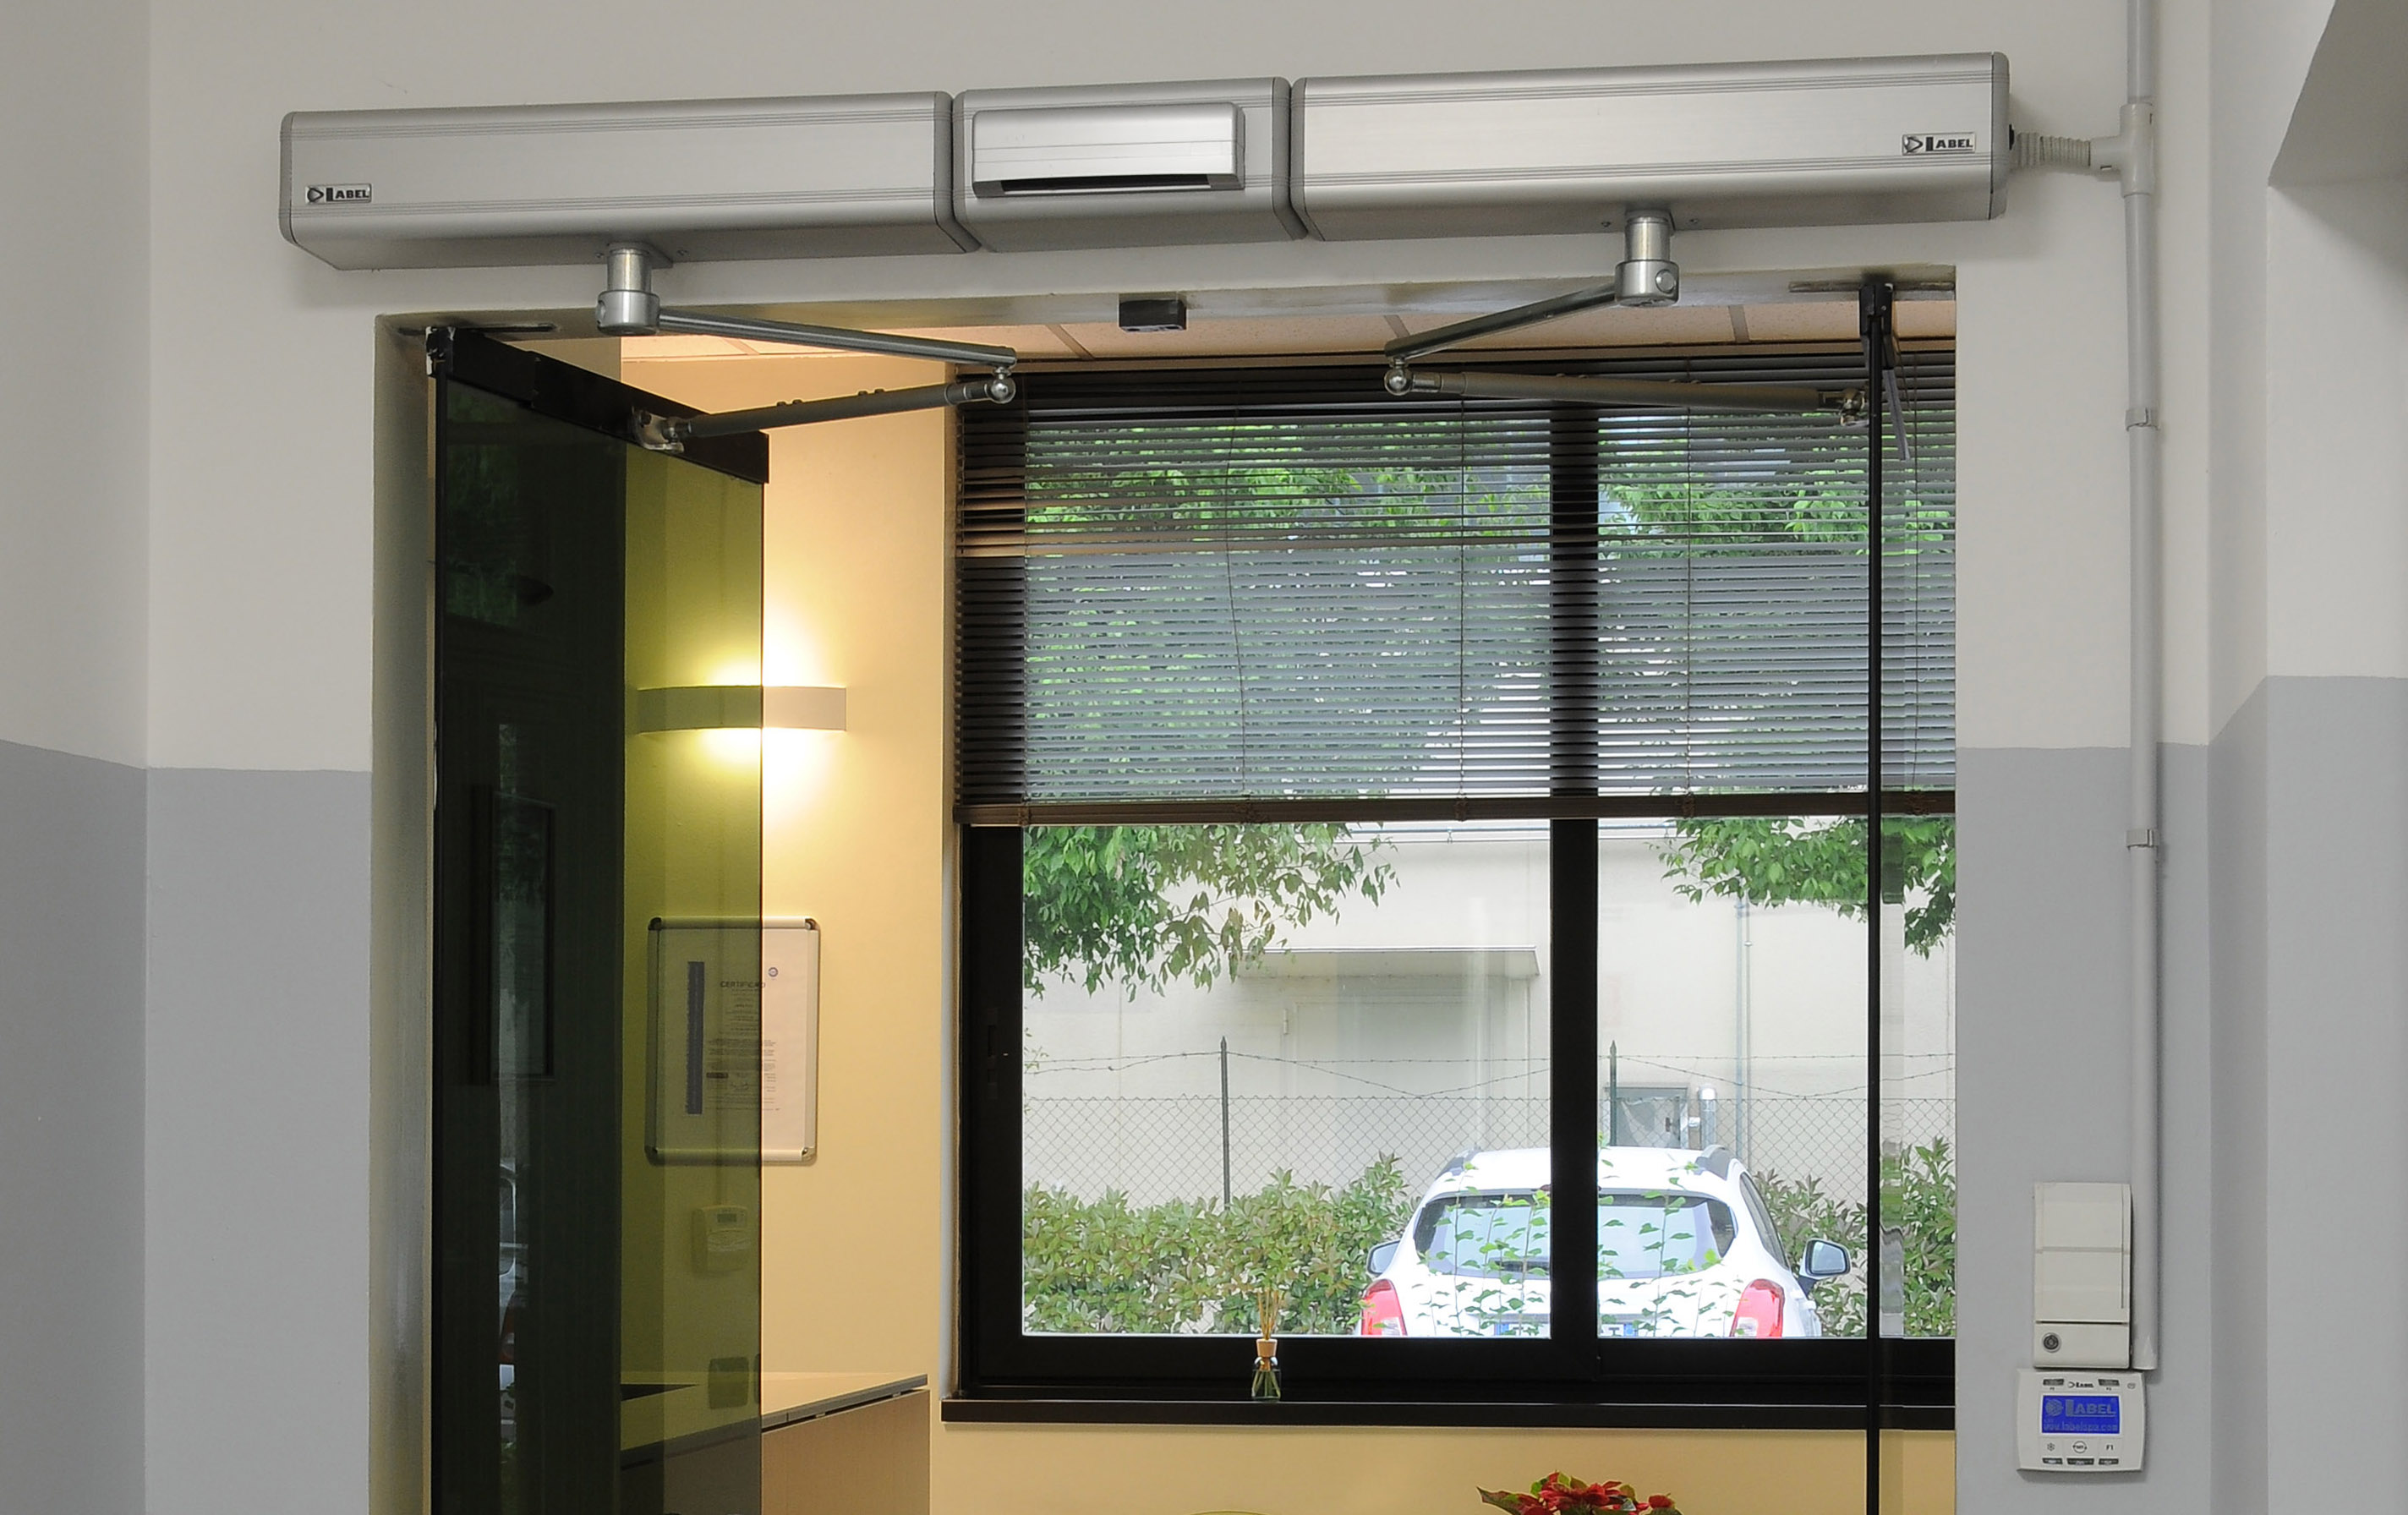 swing from h product doors albed vetro door glass by room architonic level en